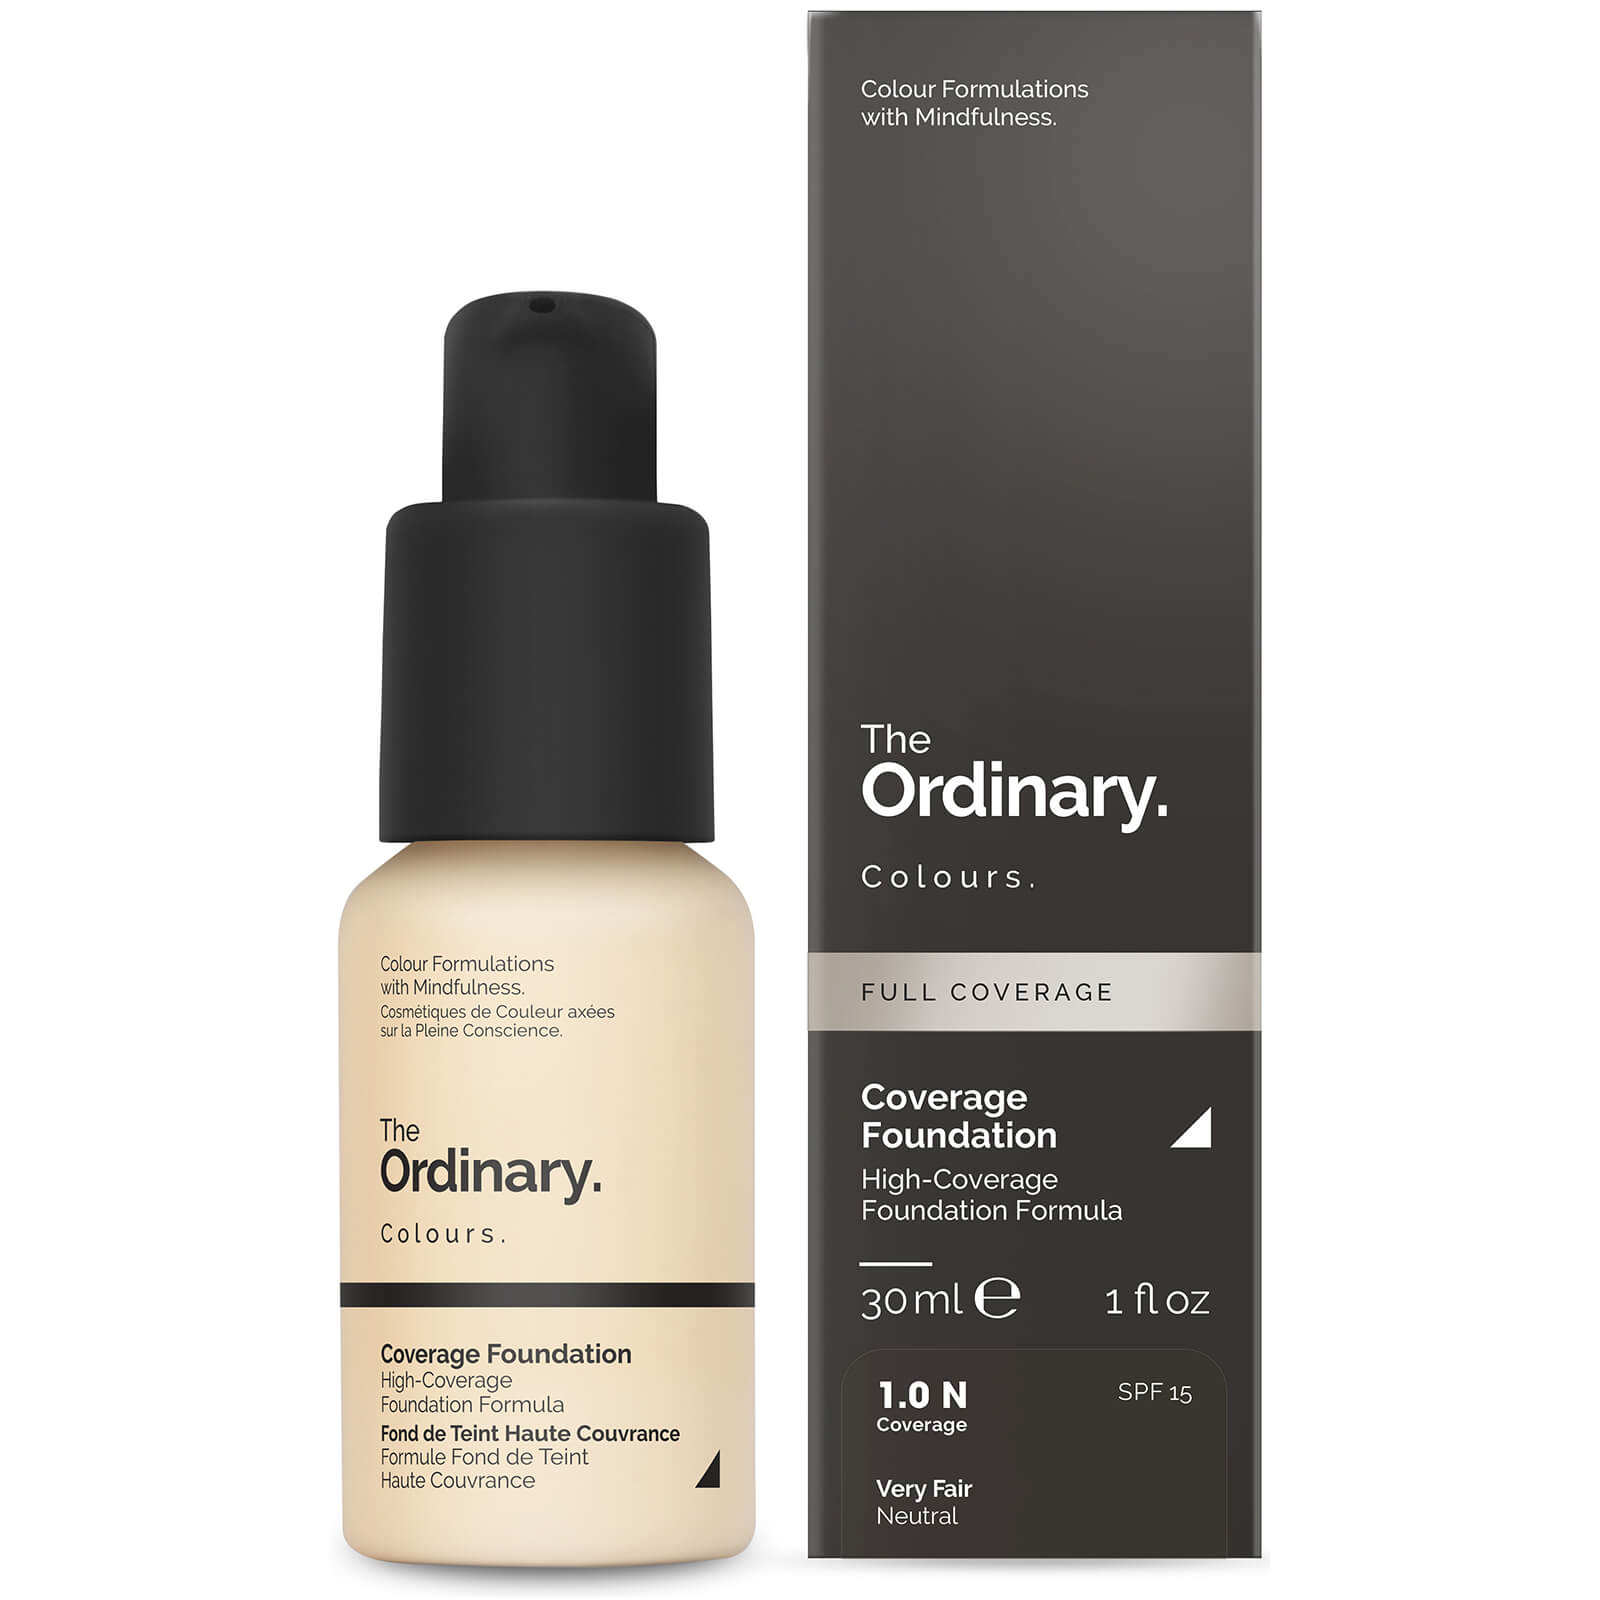 The Ordinary Coverage Foundation with SPF 15 by The Ordinary Colours 30ml (Various Shades) - 2.1P